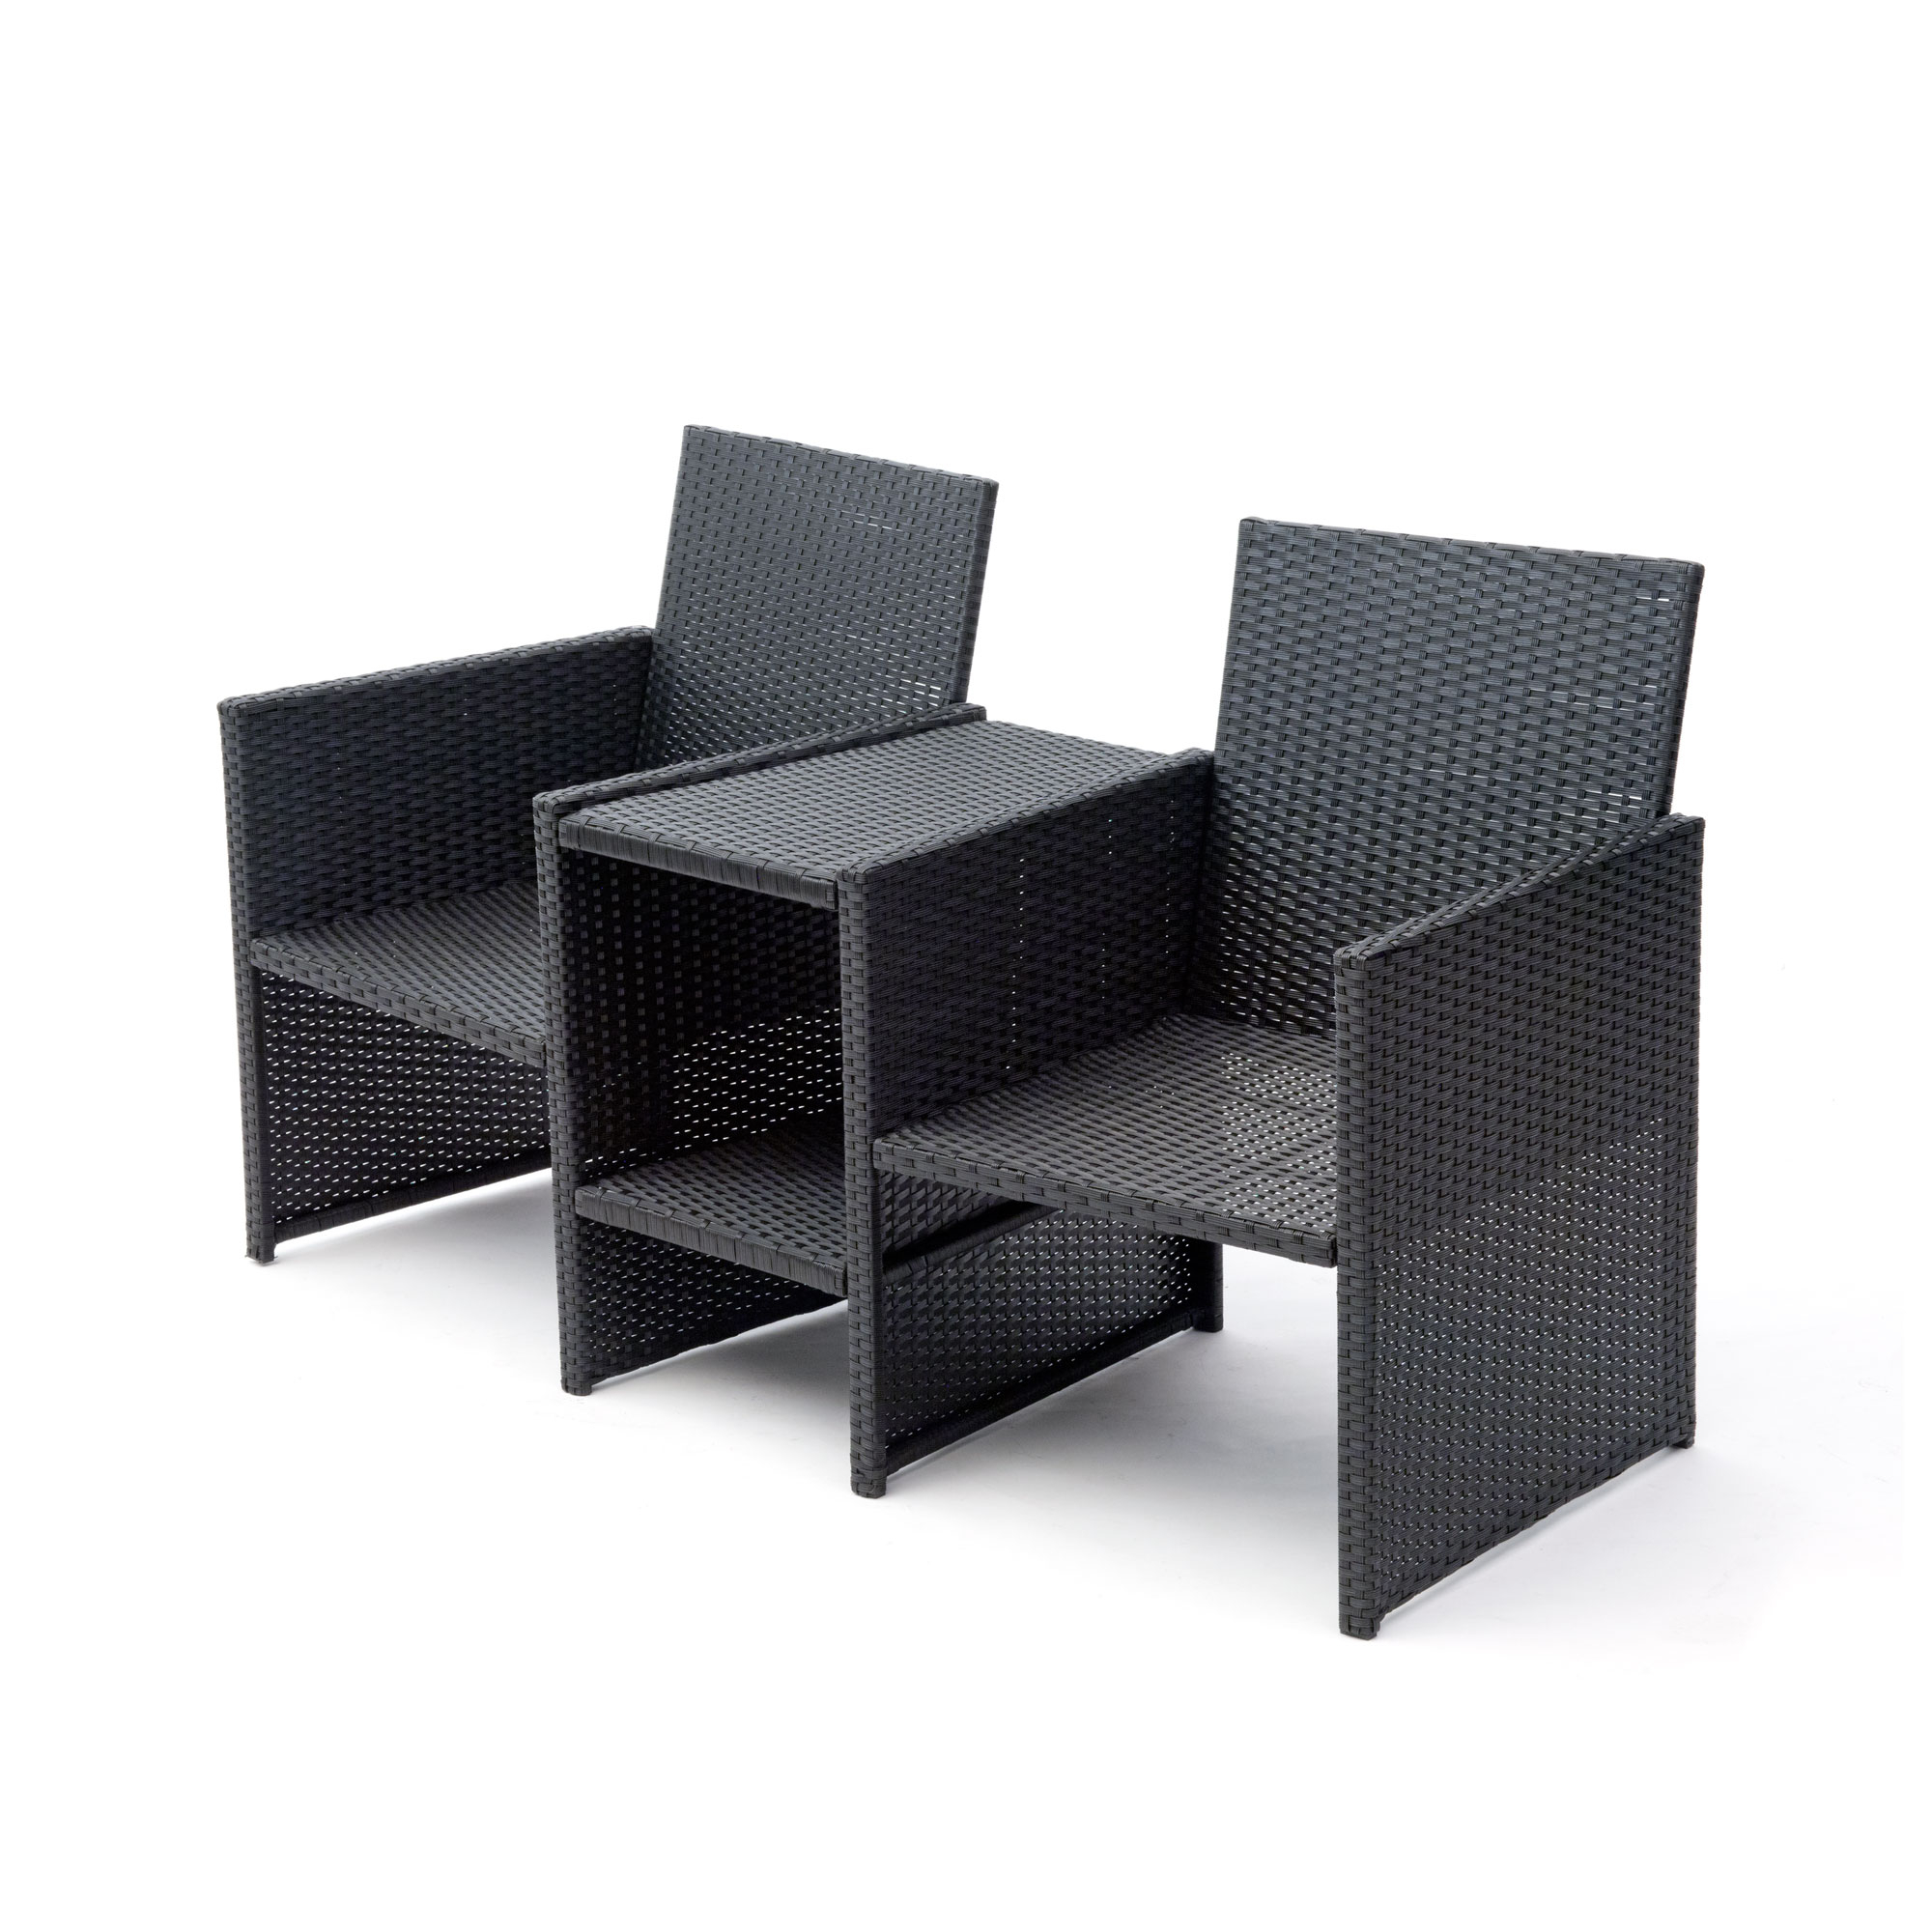 Wicker Tete A Tete Benches Inside Latest Rattan Tete A Tete – Trans Continental Group Ltd (View 19 of 30)